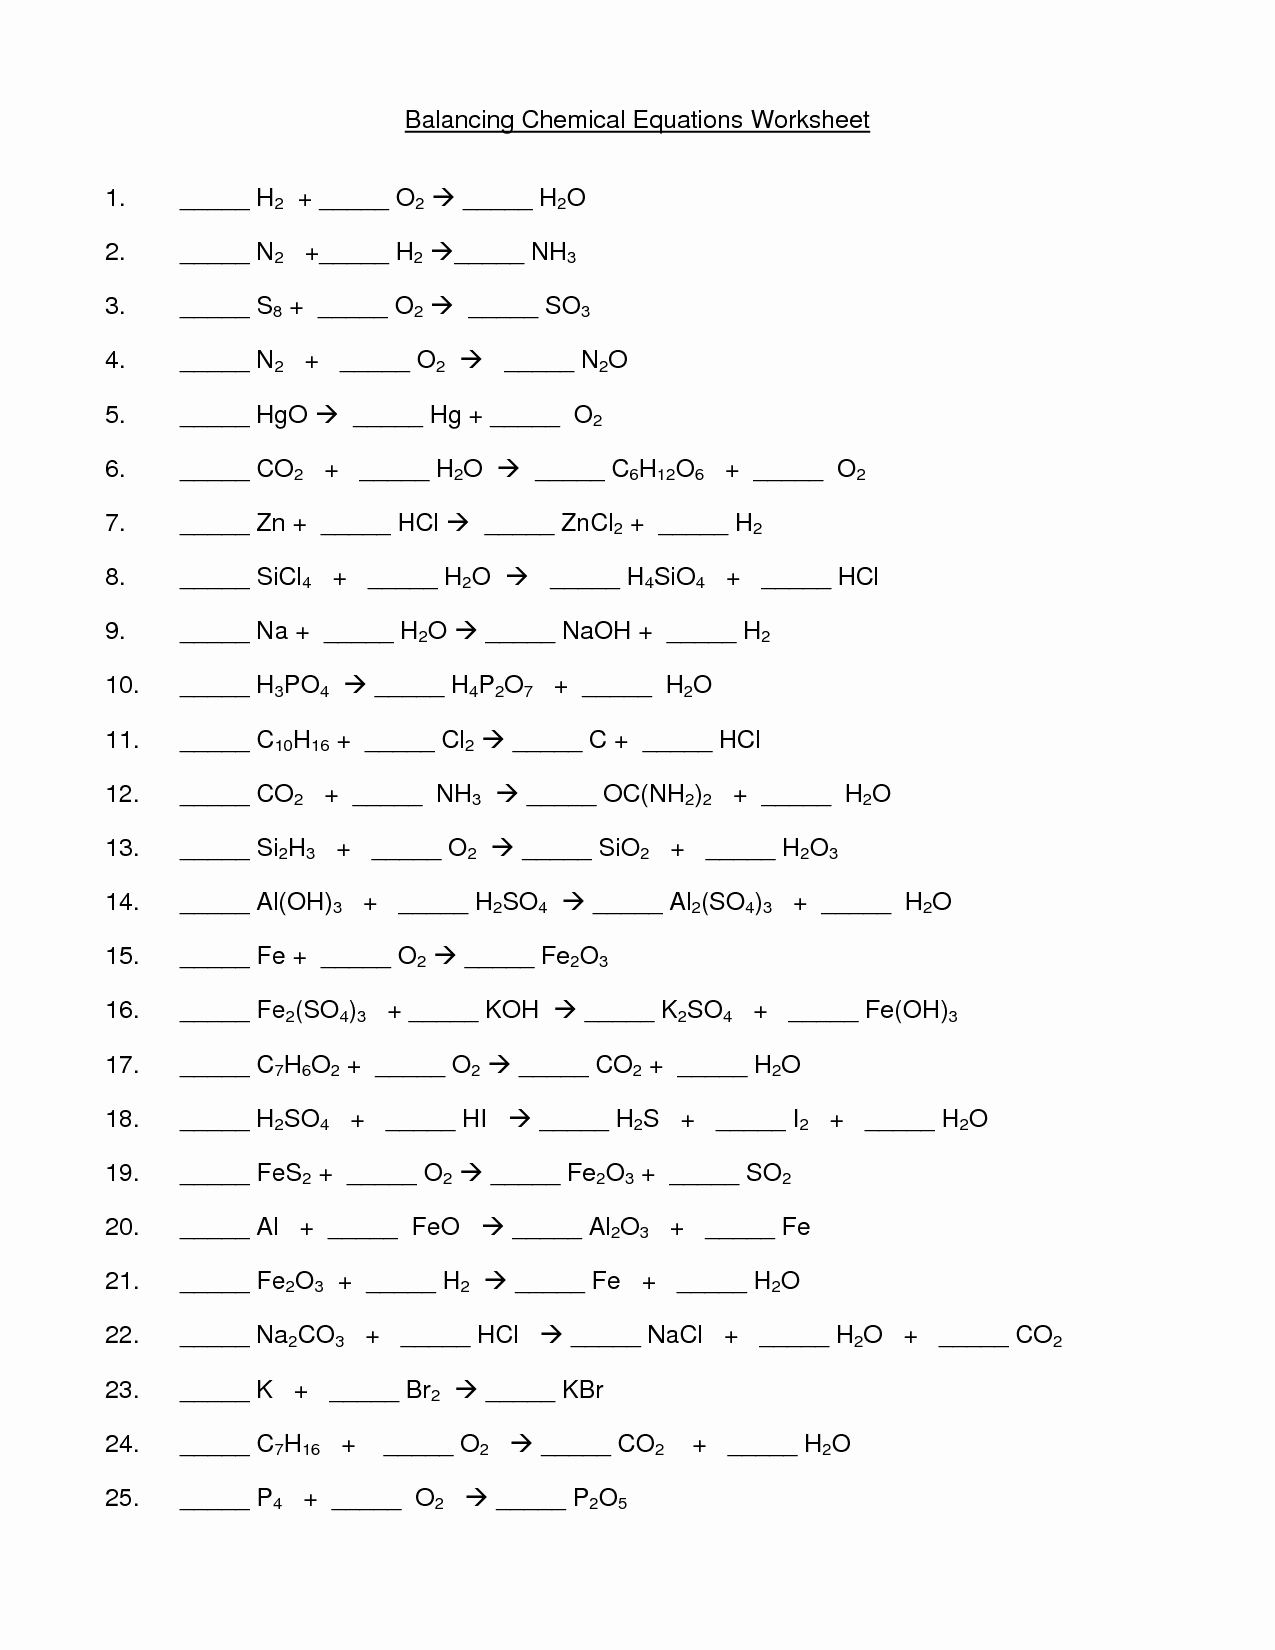 Balancing Equations Worksheet Answers Chemistry Fresh 12 Best Of Balancing Chemical Equations Worksheet